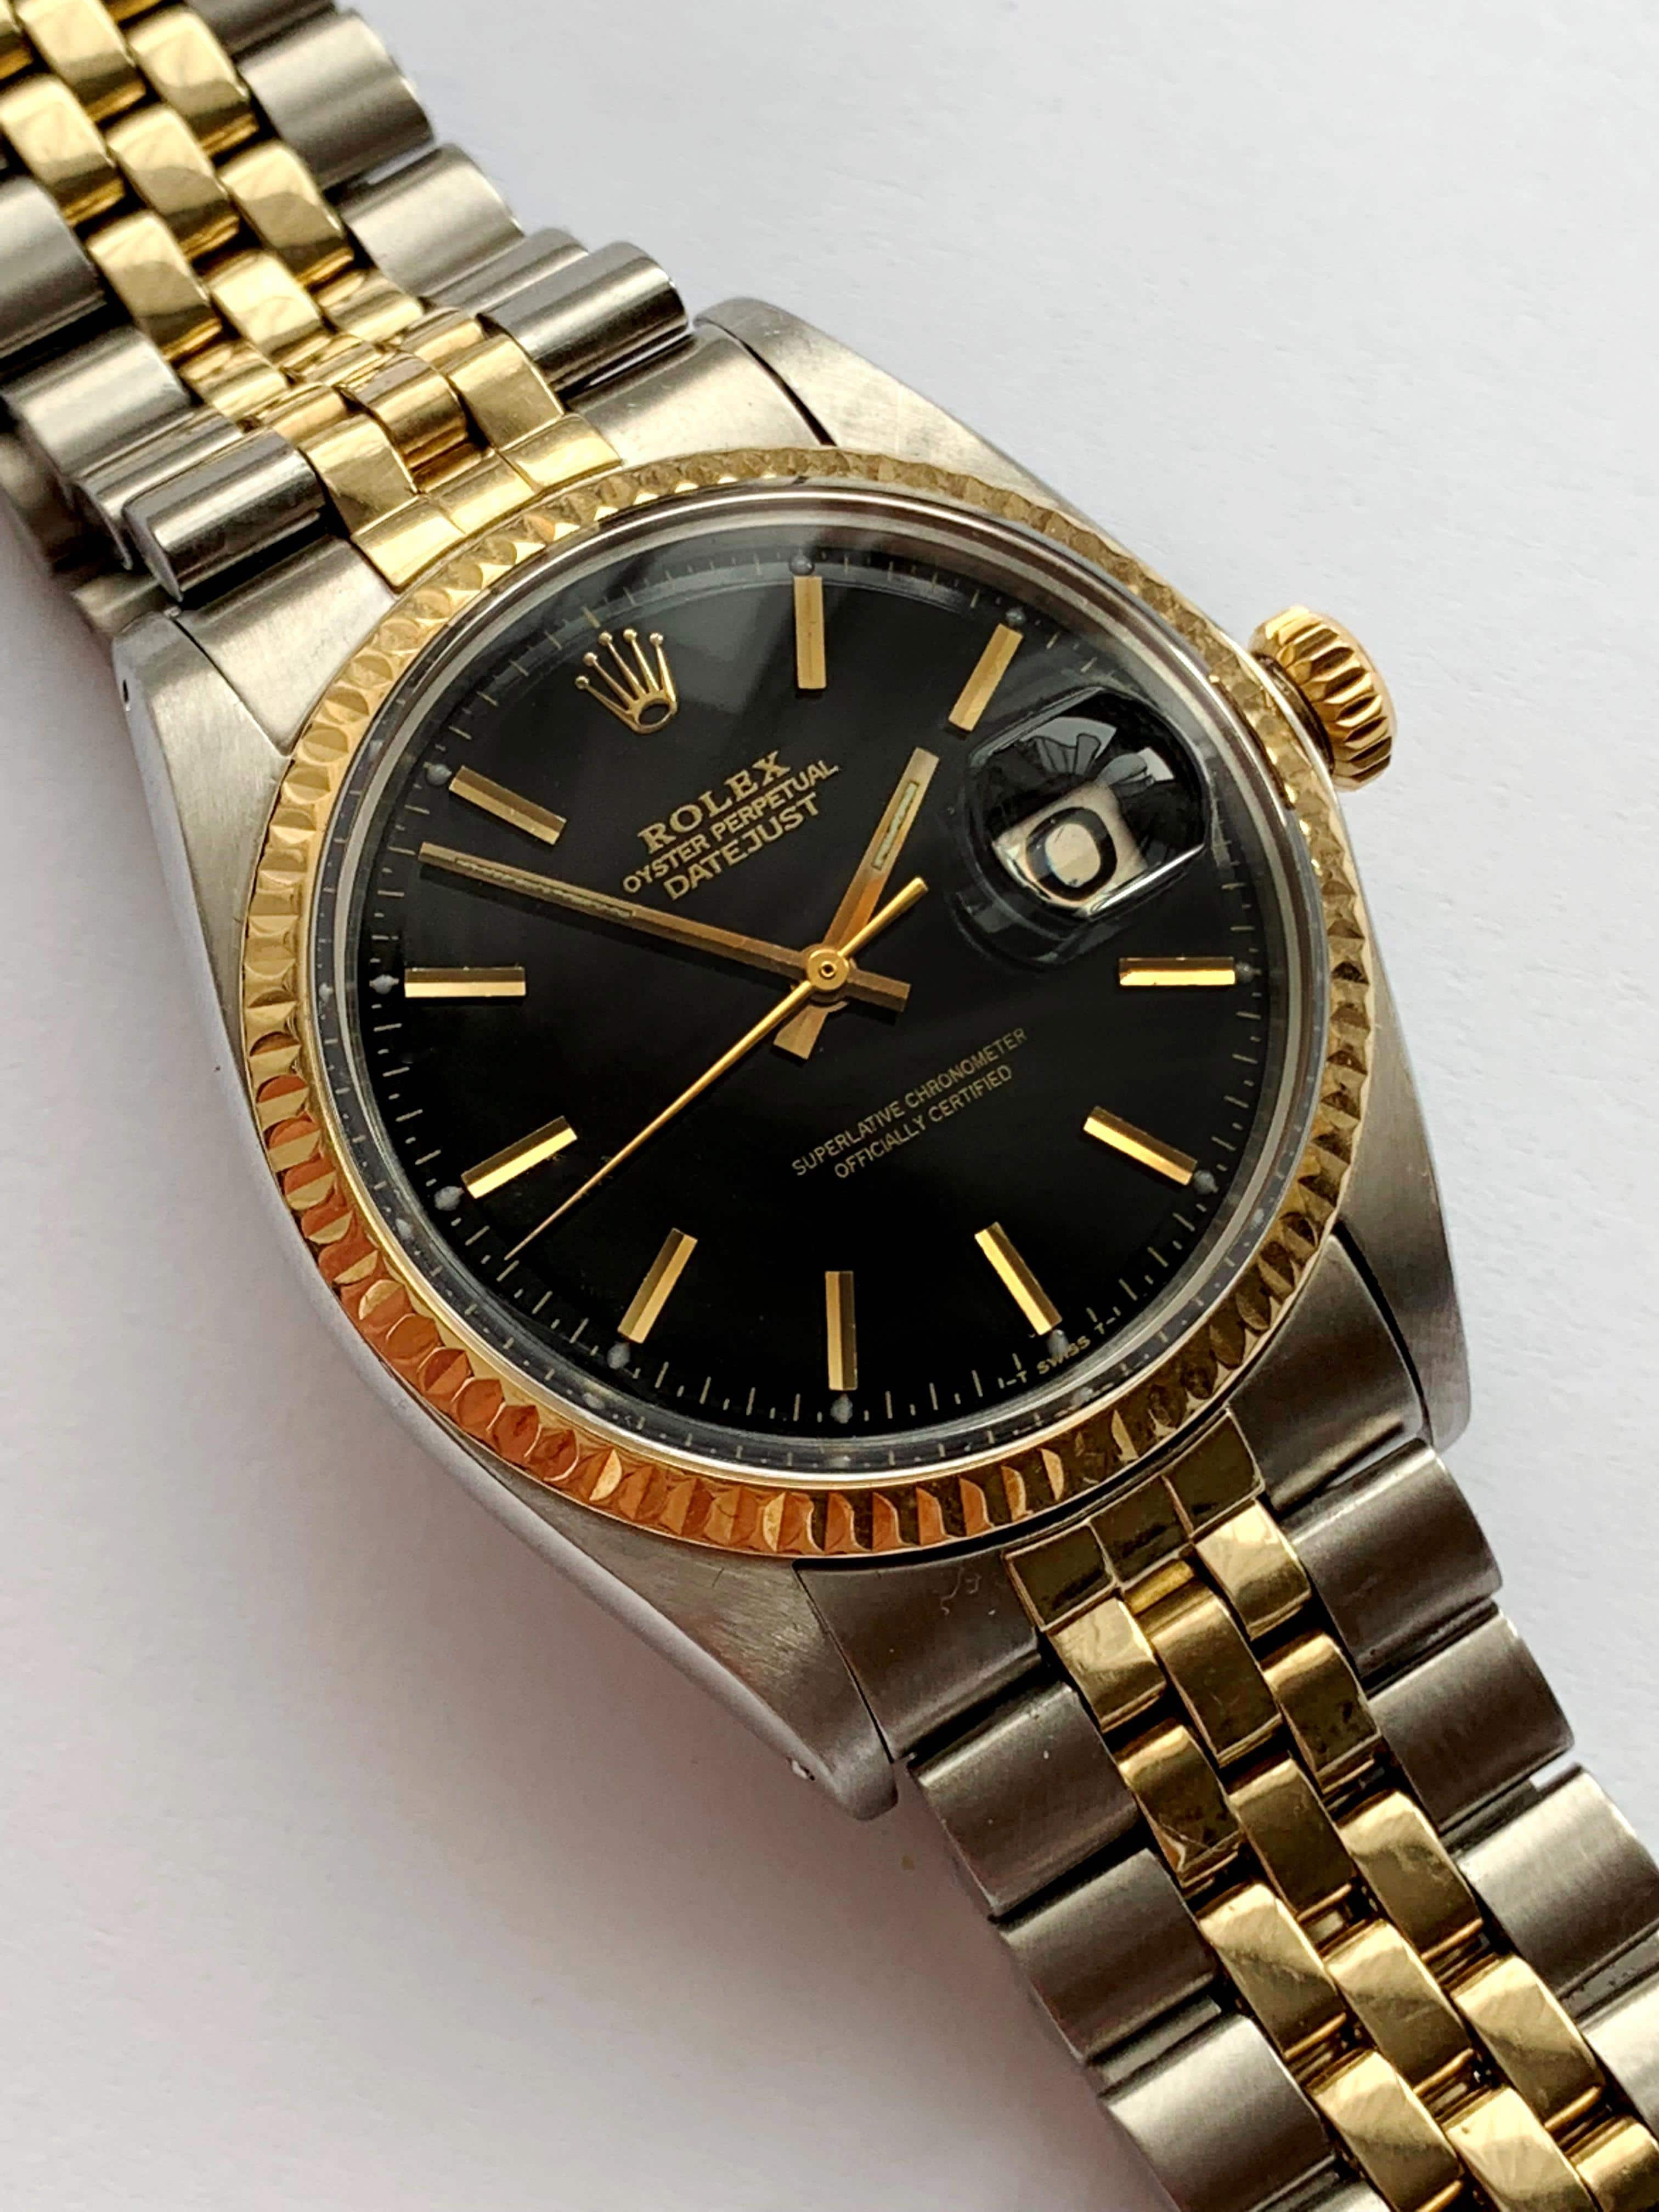 restaurierte rolex datejust 36mm stahl gold jubilee. Black Bedroom Furniture Sets. Home Design Ideas